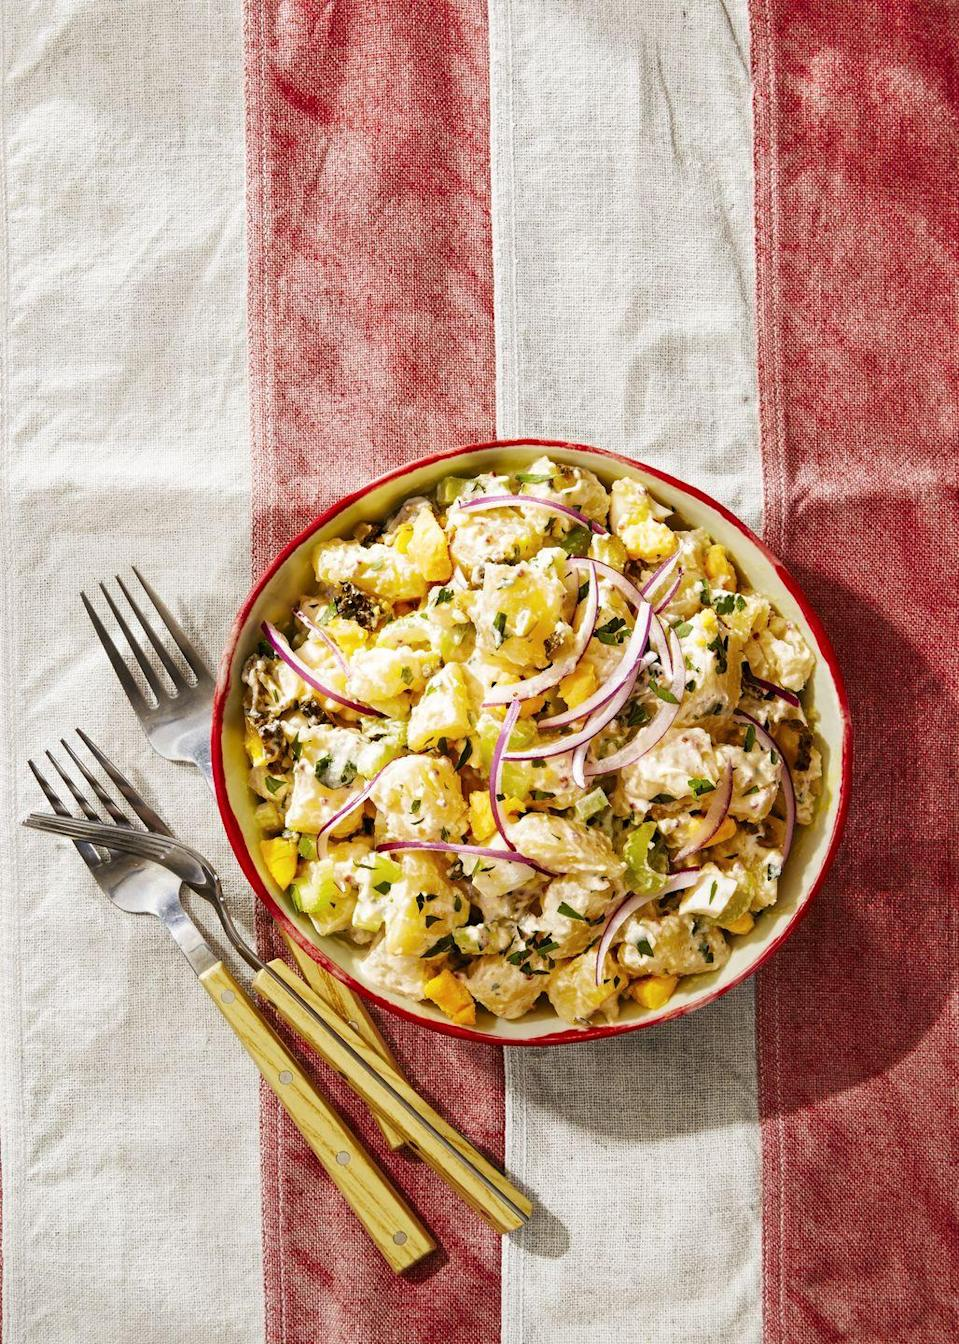 """<p>We lightened up this 4th of July recipe with Greek yogurt instead of mayo, so feel free to double scoop.</p><p><em><a href=""""https://www.goodhousekeeping.com/food-recipes/a39275/parisian-potato-salad-recipe/"""" rel=""""nofollow noopener"""" target=""""_blank"""" data-ylk=""""slk:Get the recipe for Parisian Potato Salad »"""" class=""""link rapid-noclick-resp"""">Get the recipe for Parisian Potato Salad »</a></em></p>"""